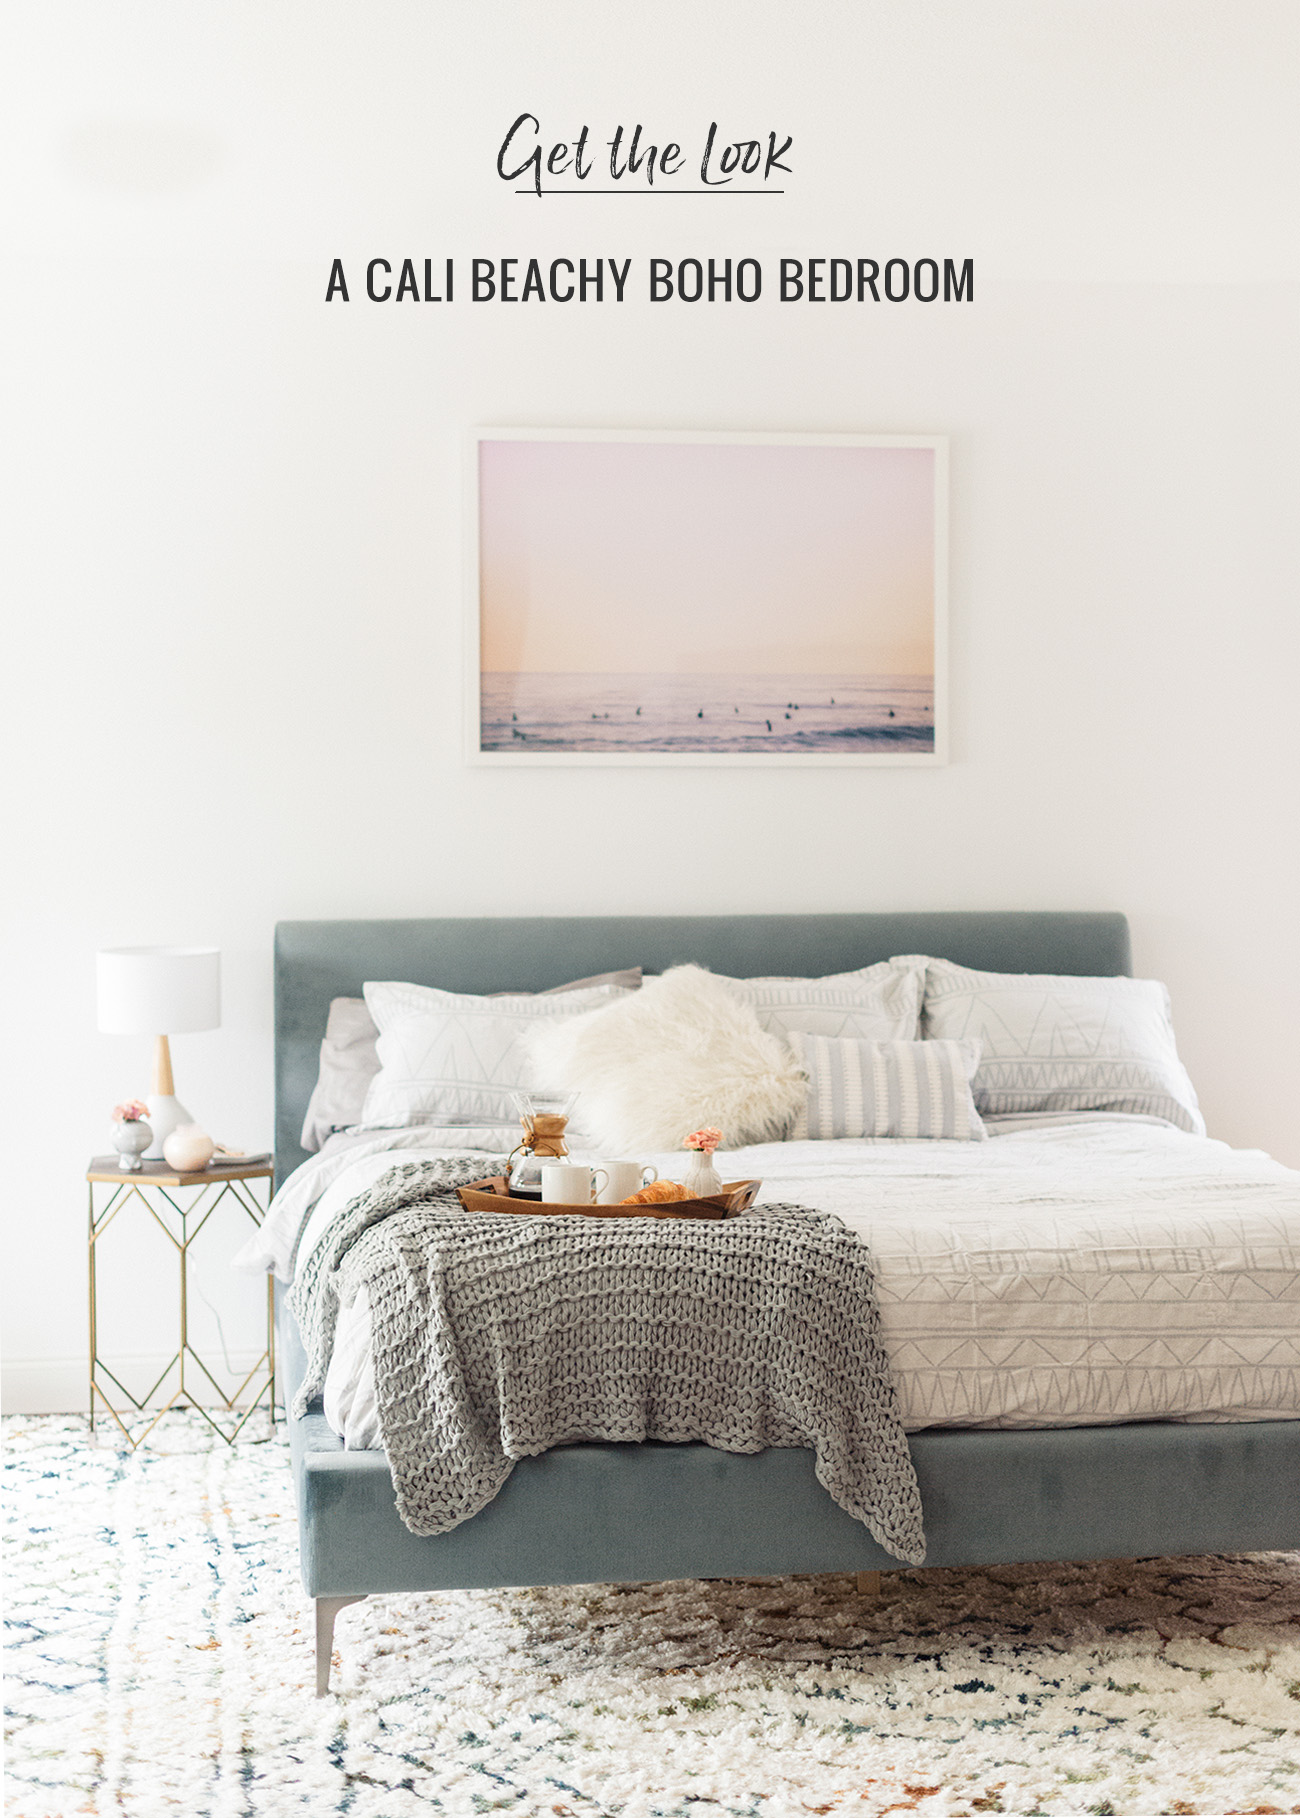 Boho Bedroom Get The Look A Cali Beachy Boho Bedroom Green Wedding Shoes